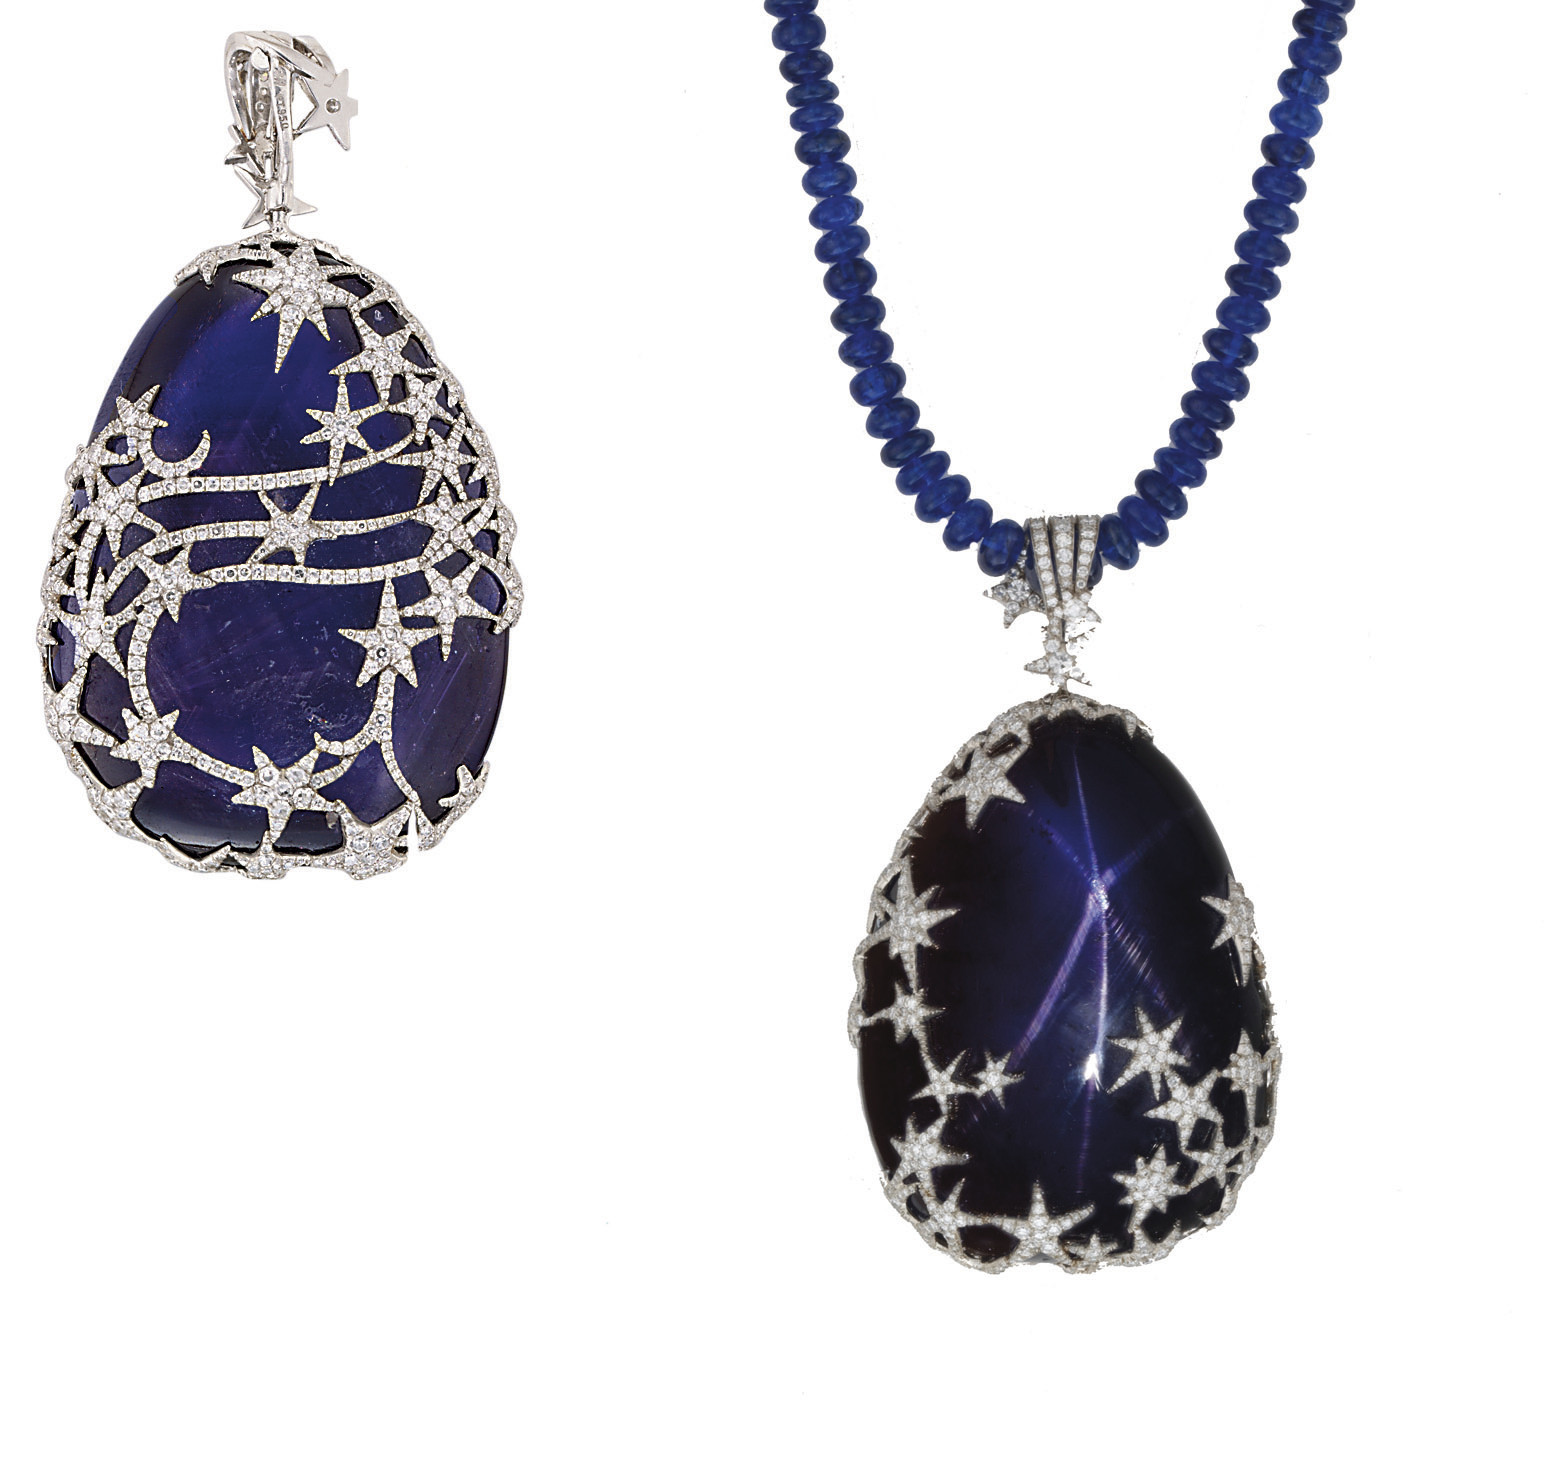 blue redesign custom jewelry blog after remount heirloom star before blogs and zemans banda sapphire rebecca